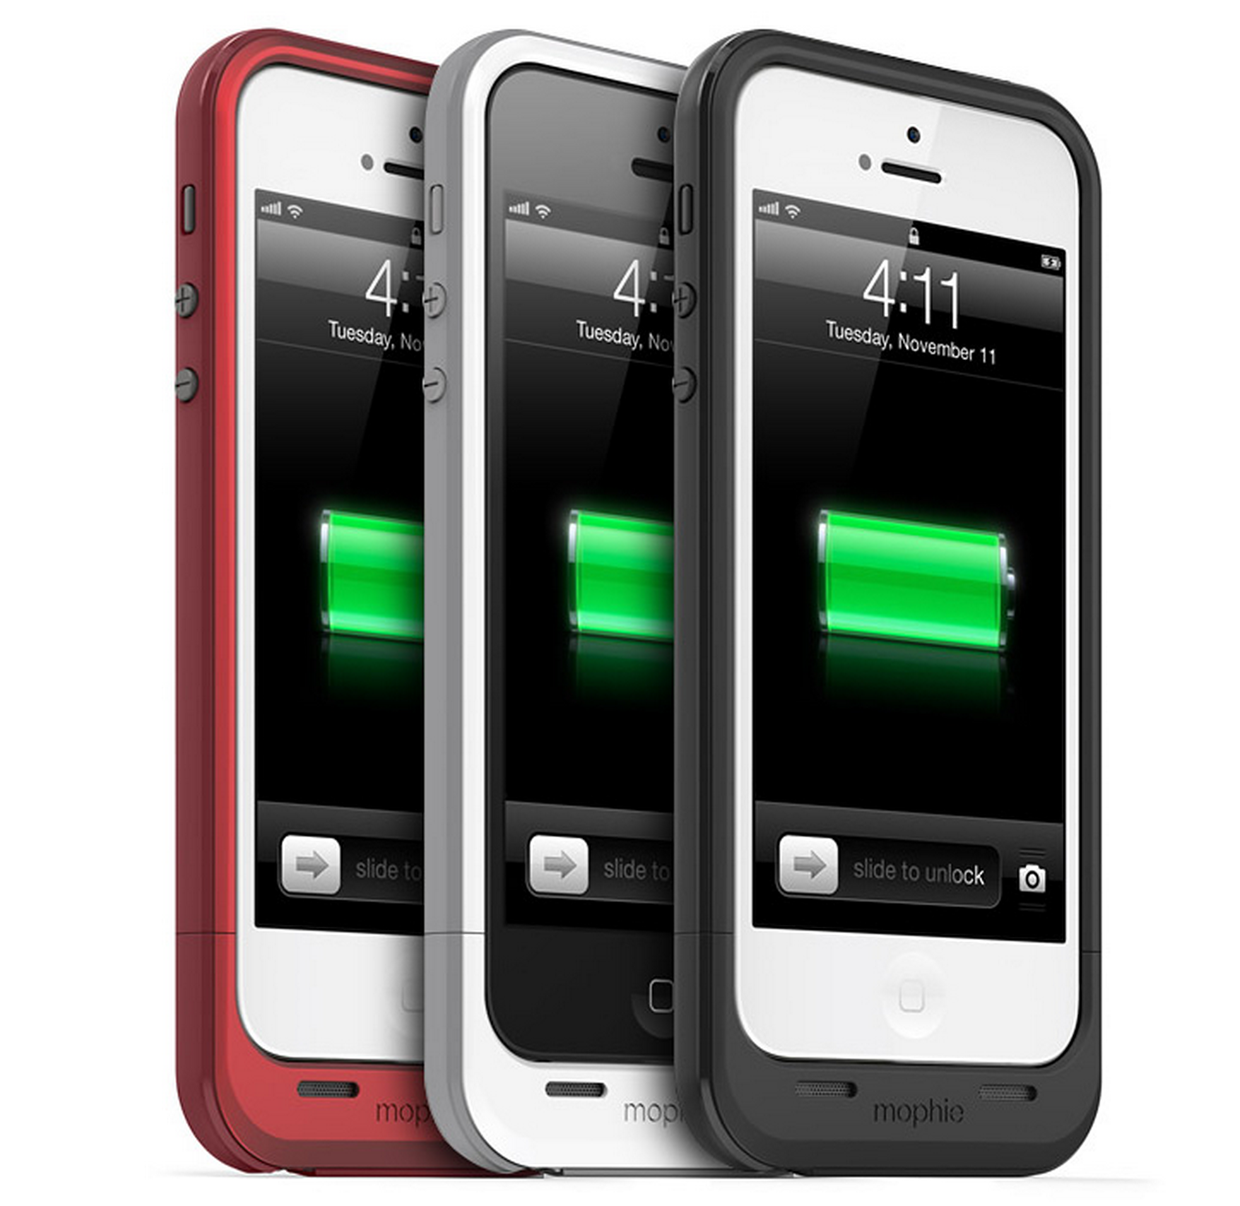 The Mophie Space Pack Makes Your iPhone 5s  - Image 1